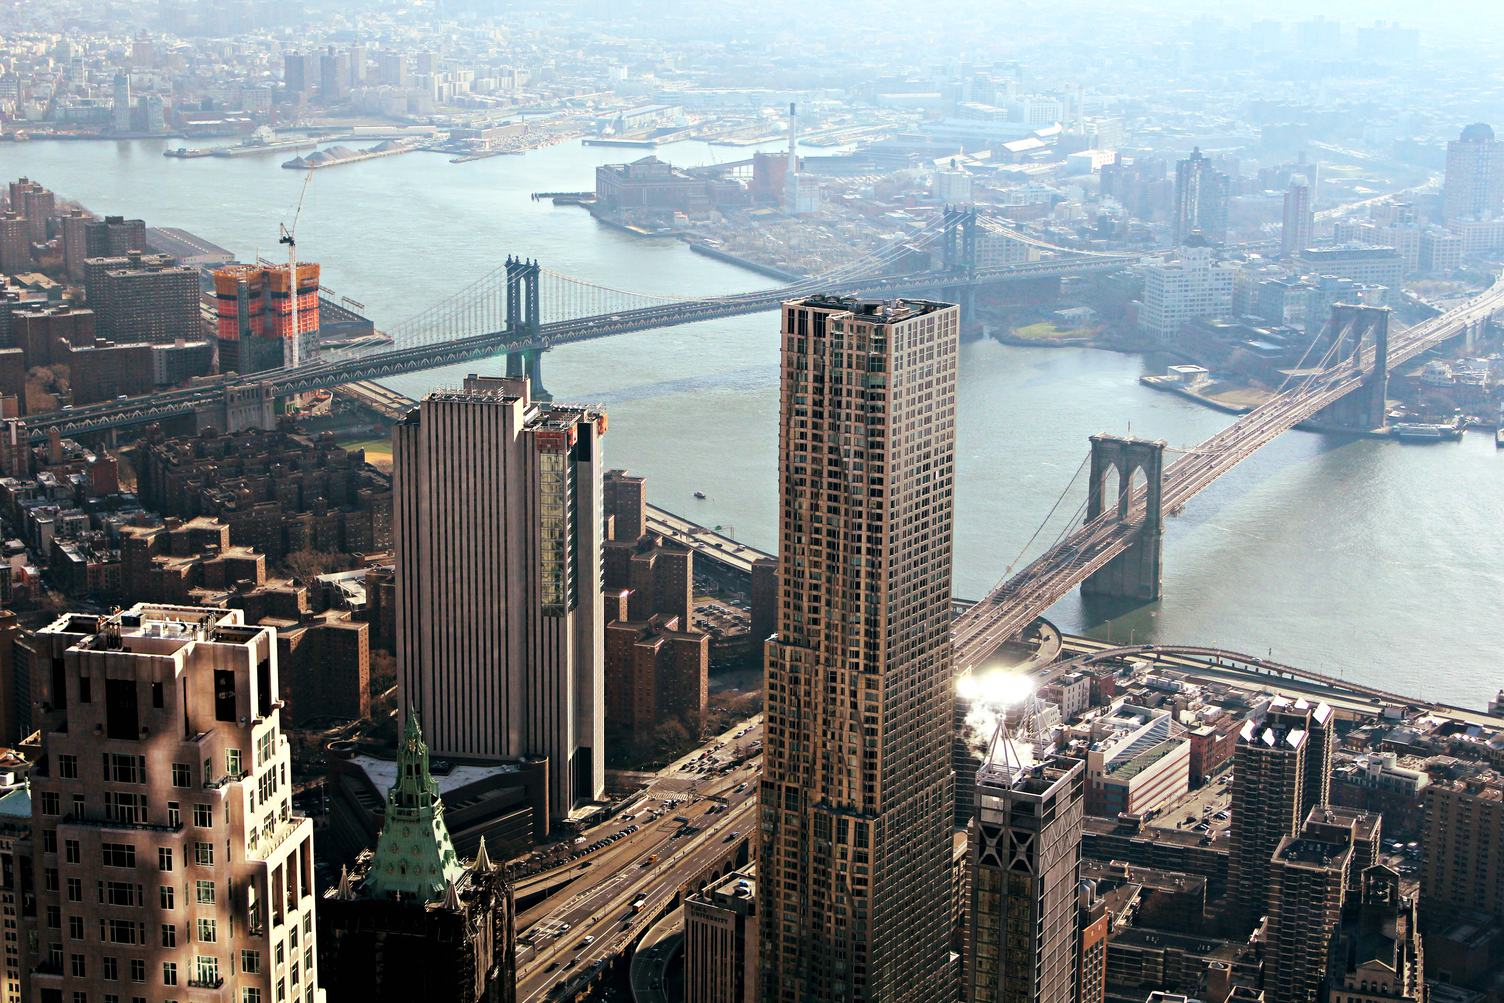 Manhattan Downtown Rooftop View on East River